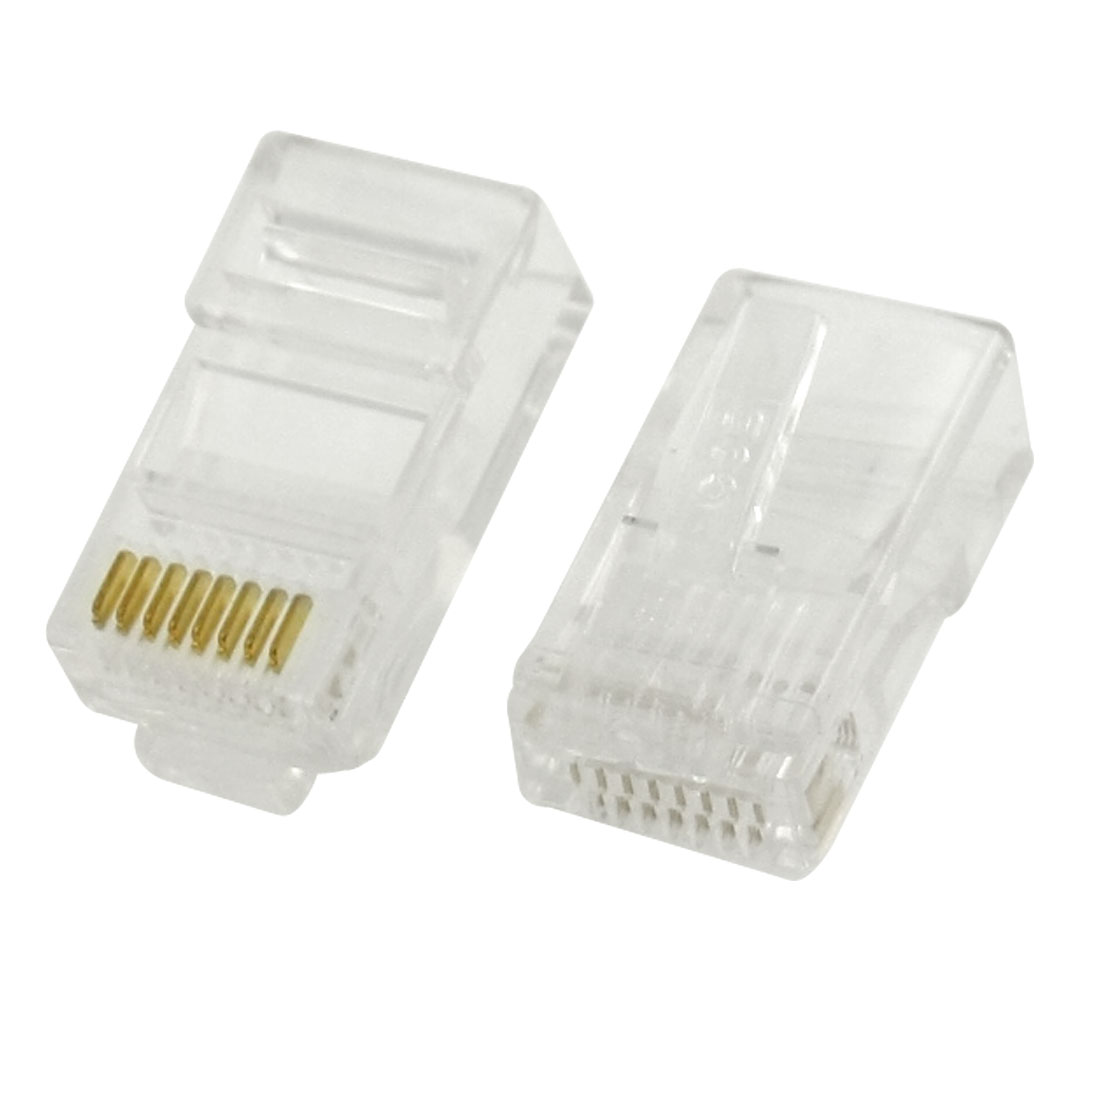 Plastic Shell RJ45 Jack Cat5E Lan Network Connectors Clear 100 Pcs